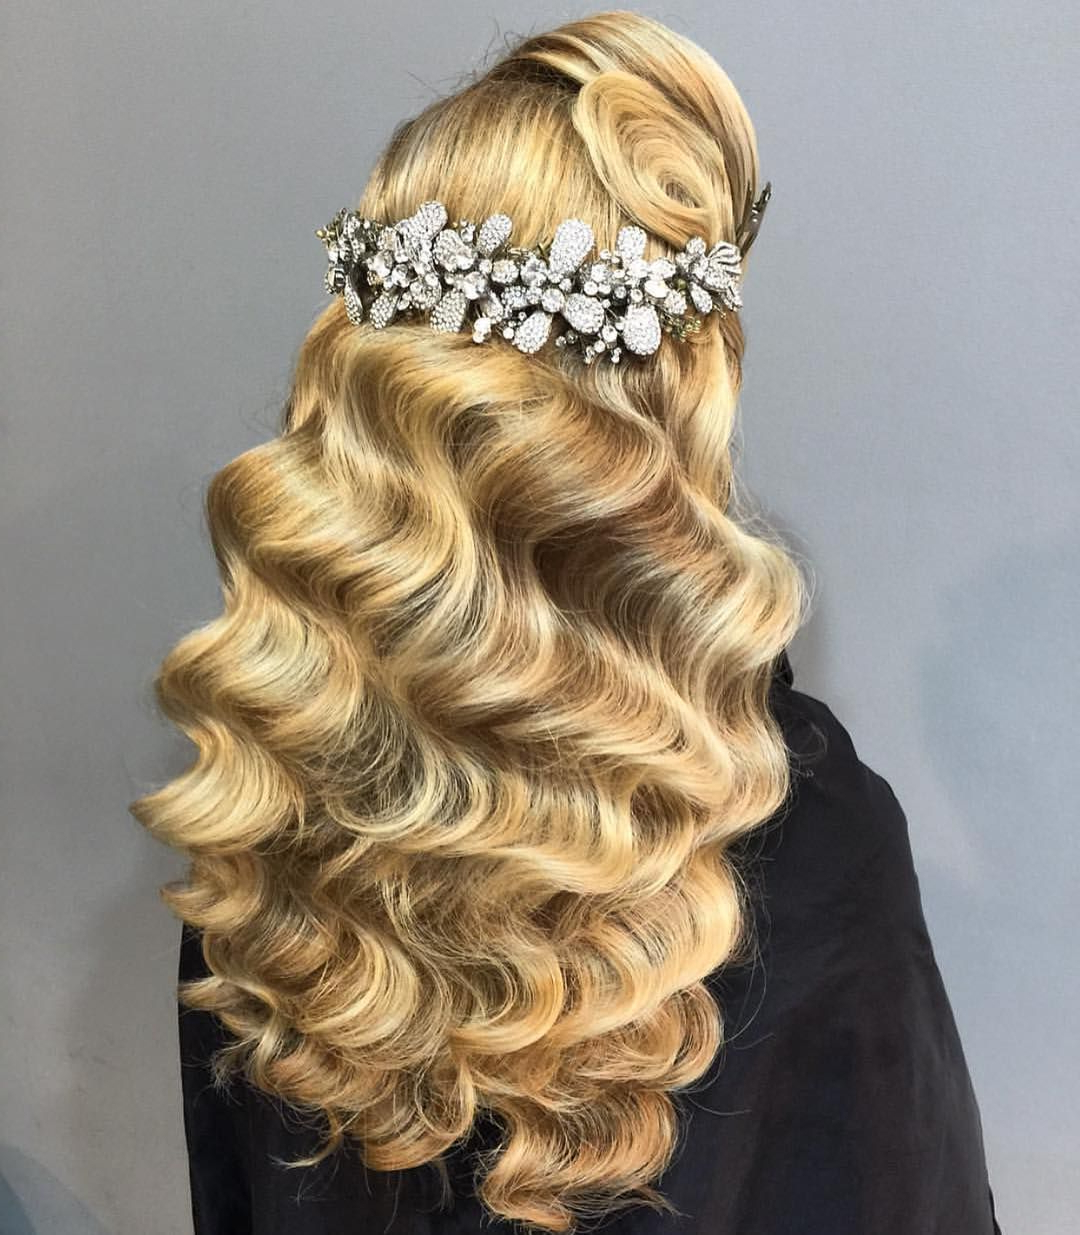 Wedding Hairstyles, Half Up Throughout Most Current Dimensional Waves In Half Up Wedding Hairstyles (View 6 of 20)